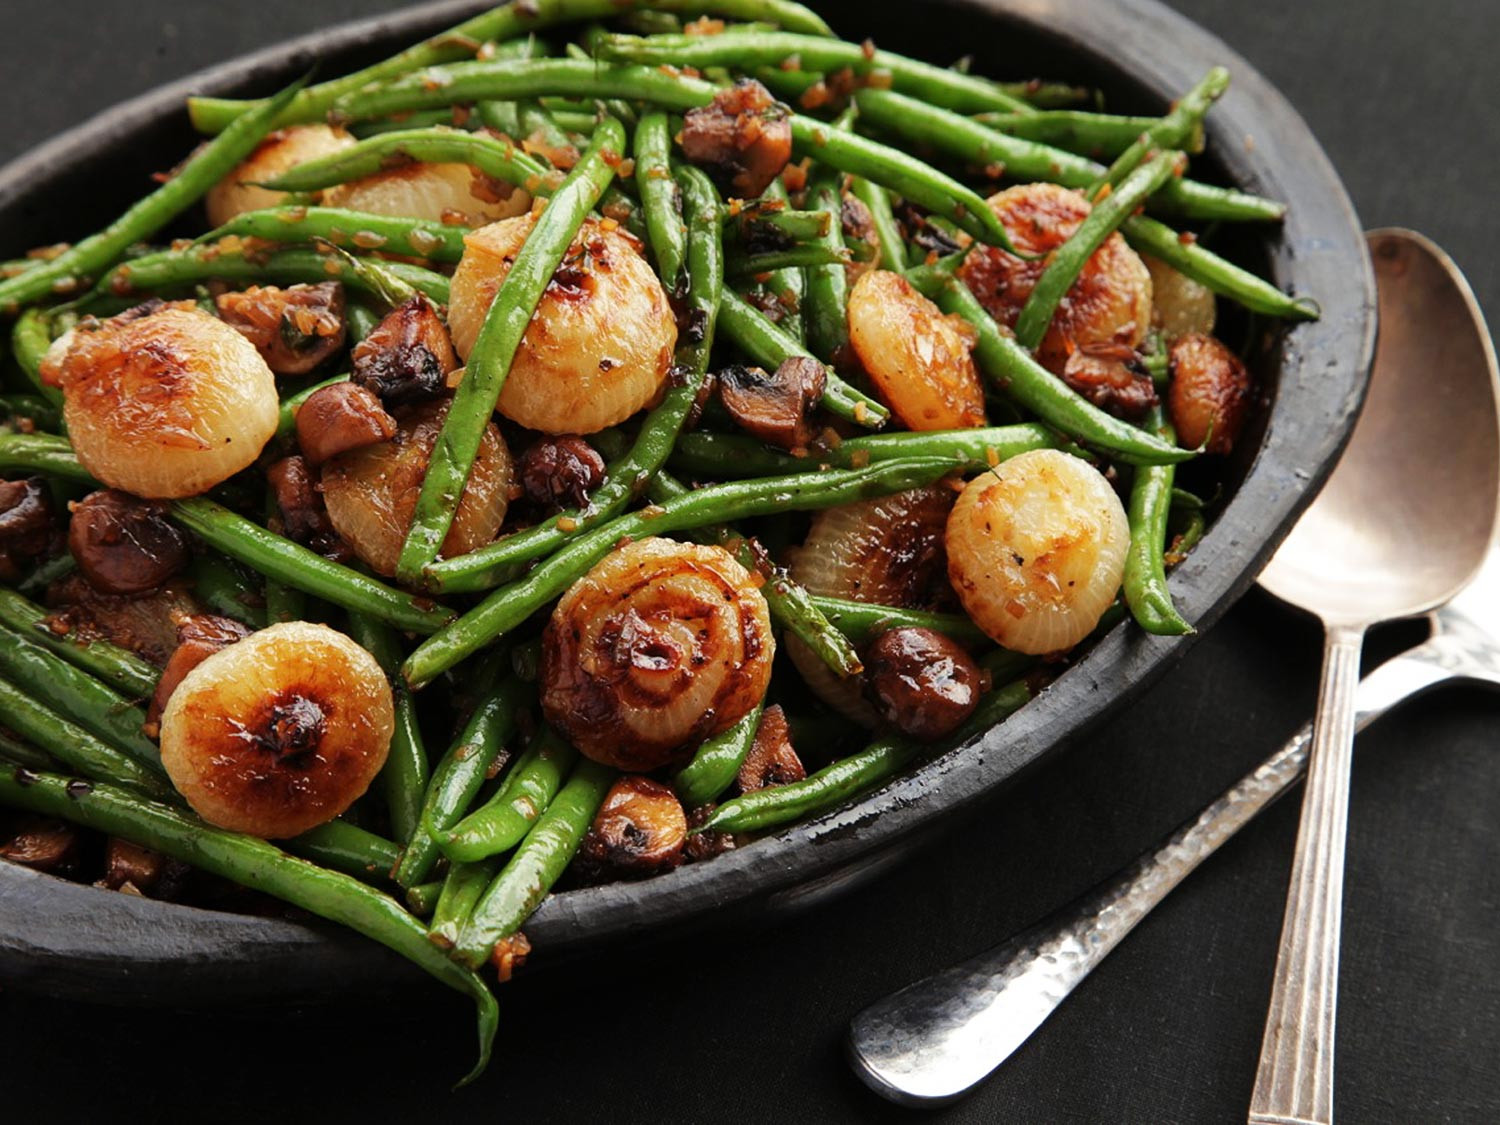 Green Bean Recipes For Thanksgiving  The Food Lab Sautéed Green Beans With Mushrooms and